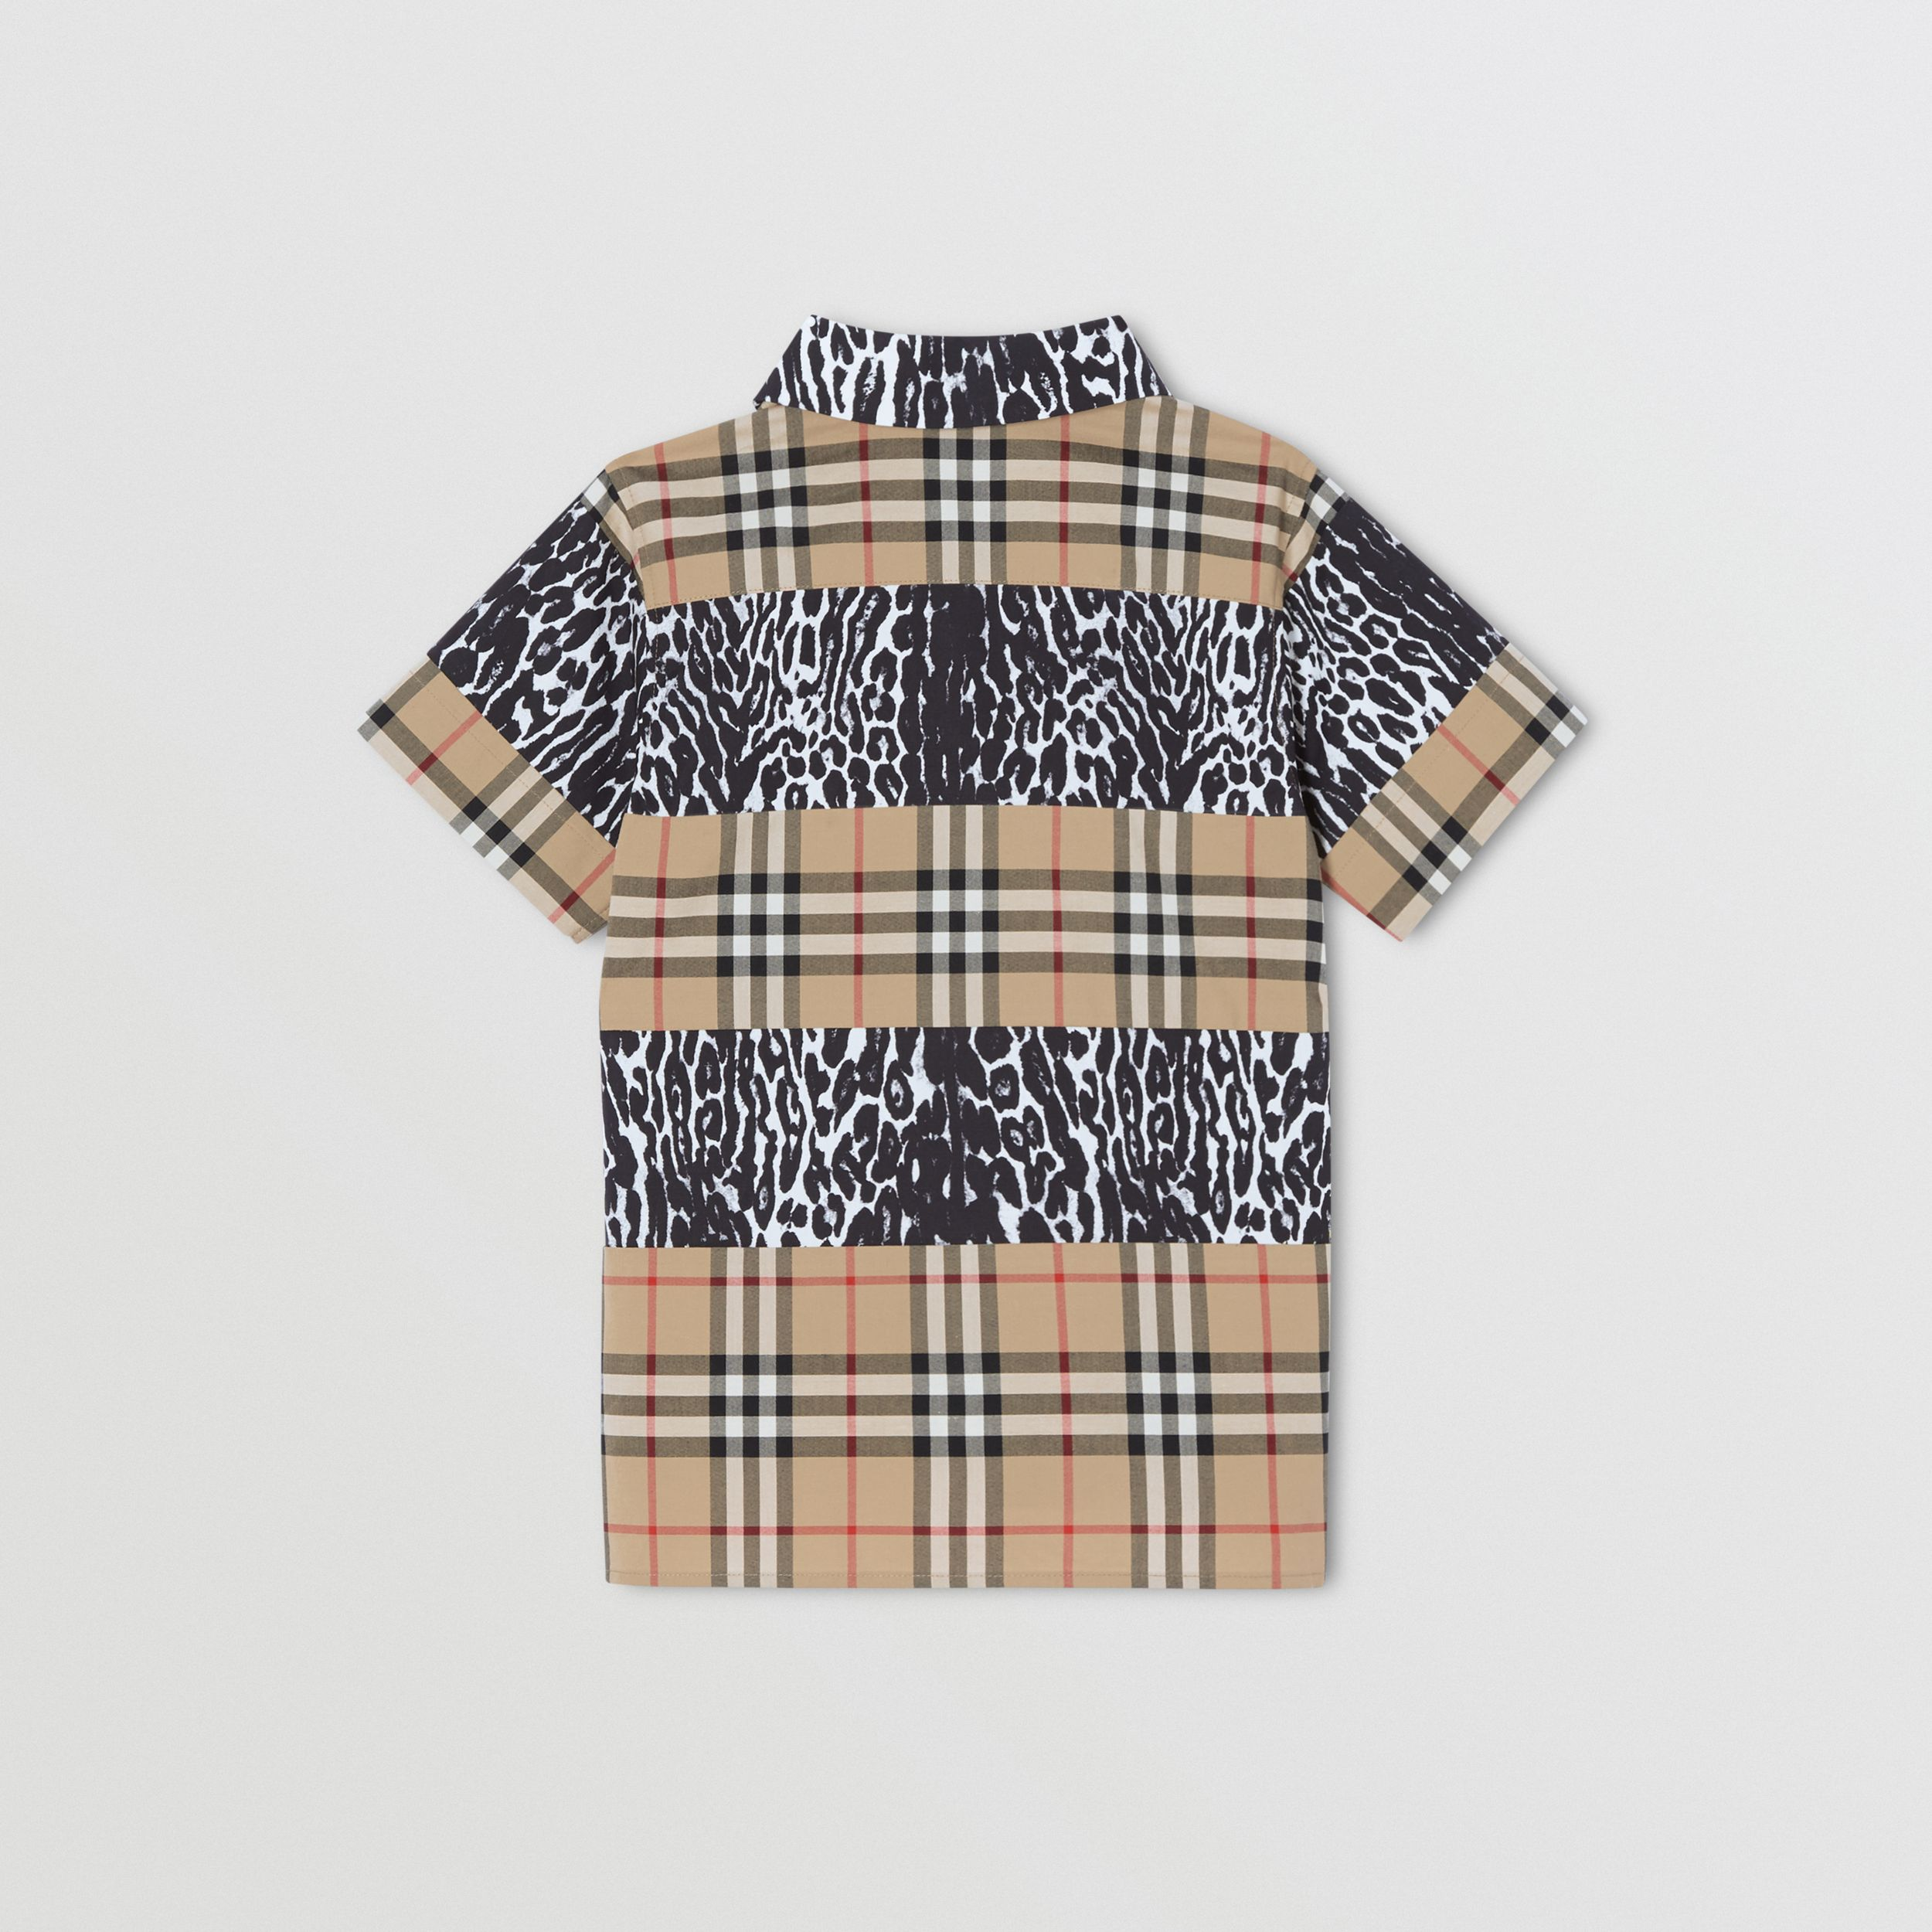 Short-sleeve Vintage Check and Leopard Print Shirt in Archive Beige | Burberry - 4